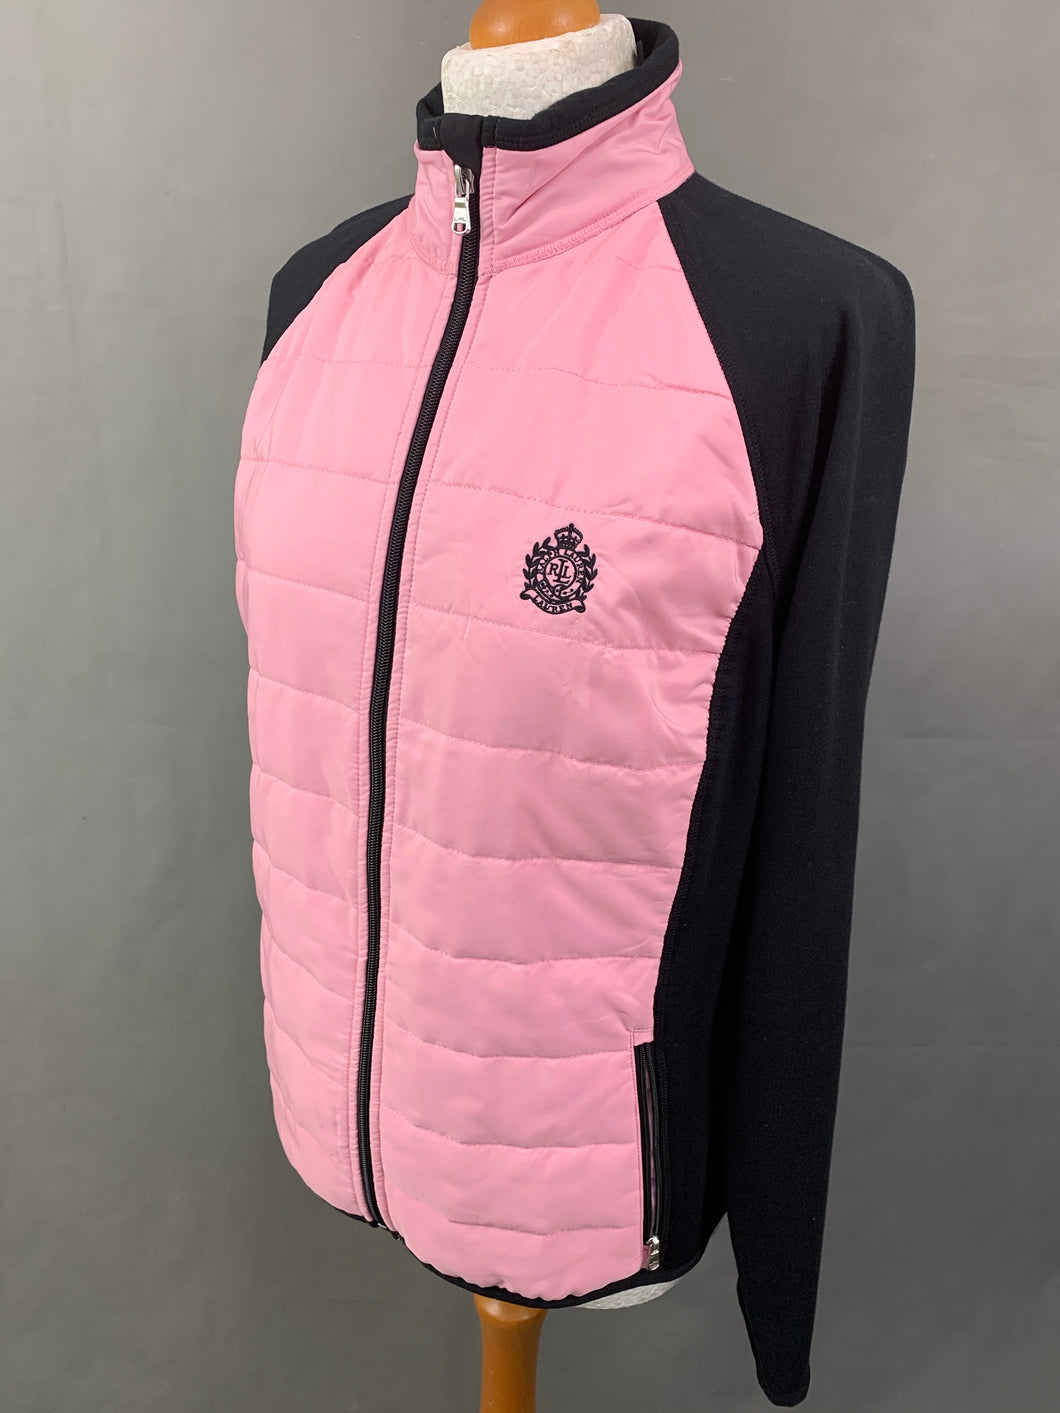 LRL RALPH LAUREN Ladies Black & Pink QUILTED JACKET Size L LARGE